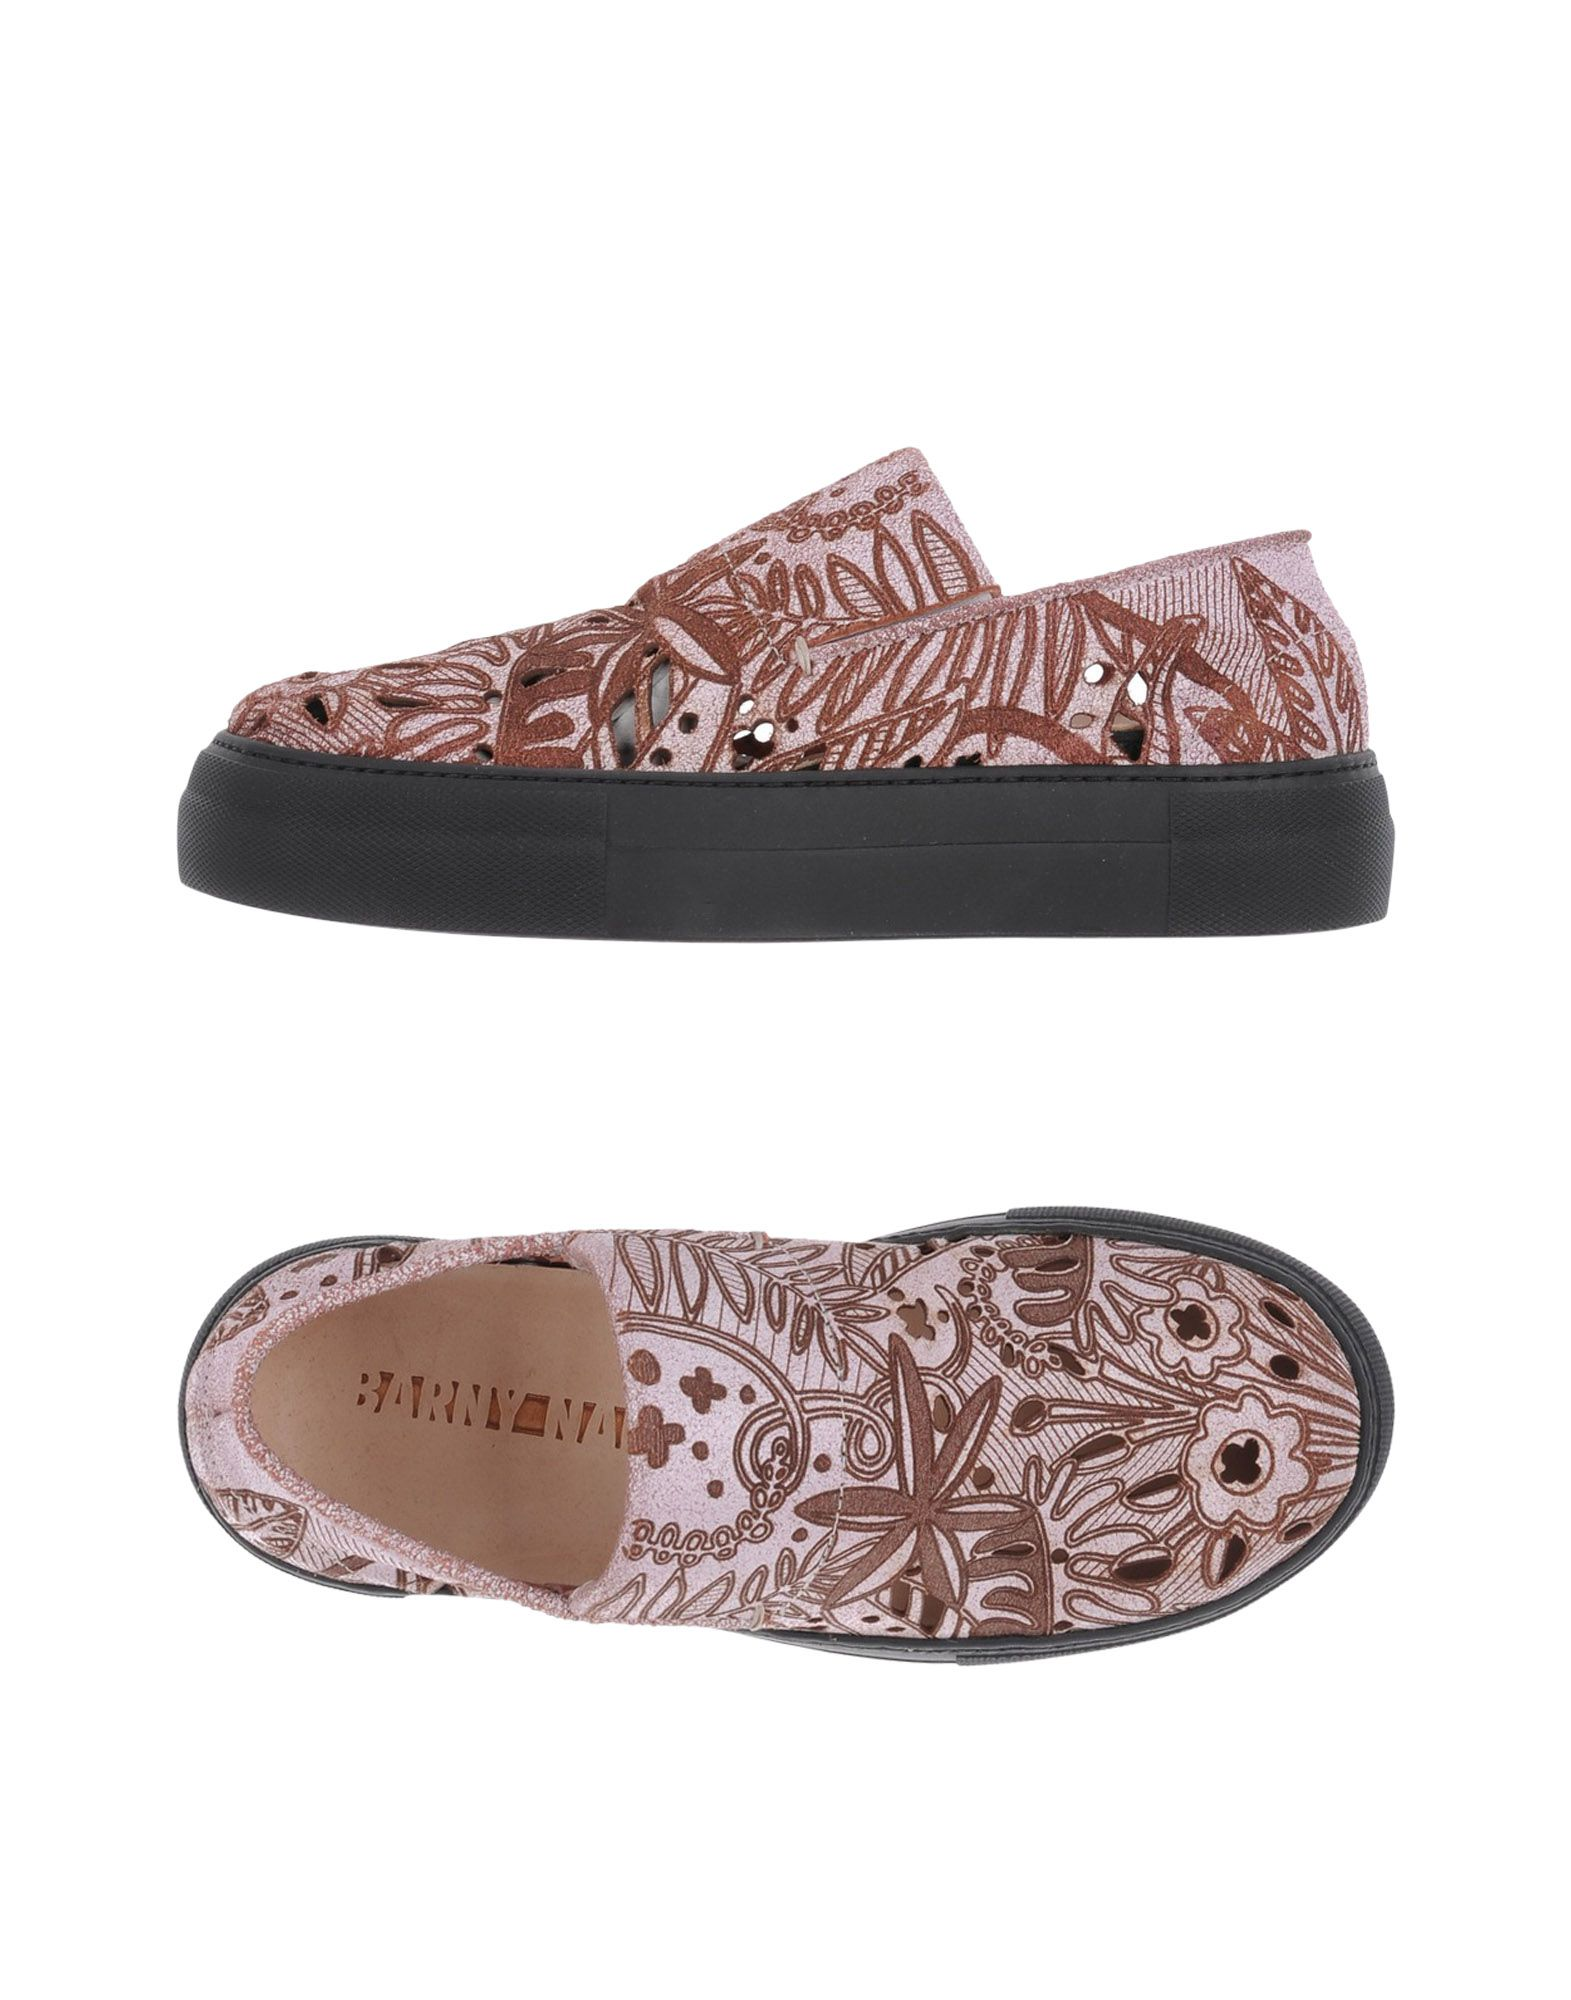 Sneakers Barny Nakhle Donna - Acquista online su